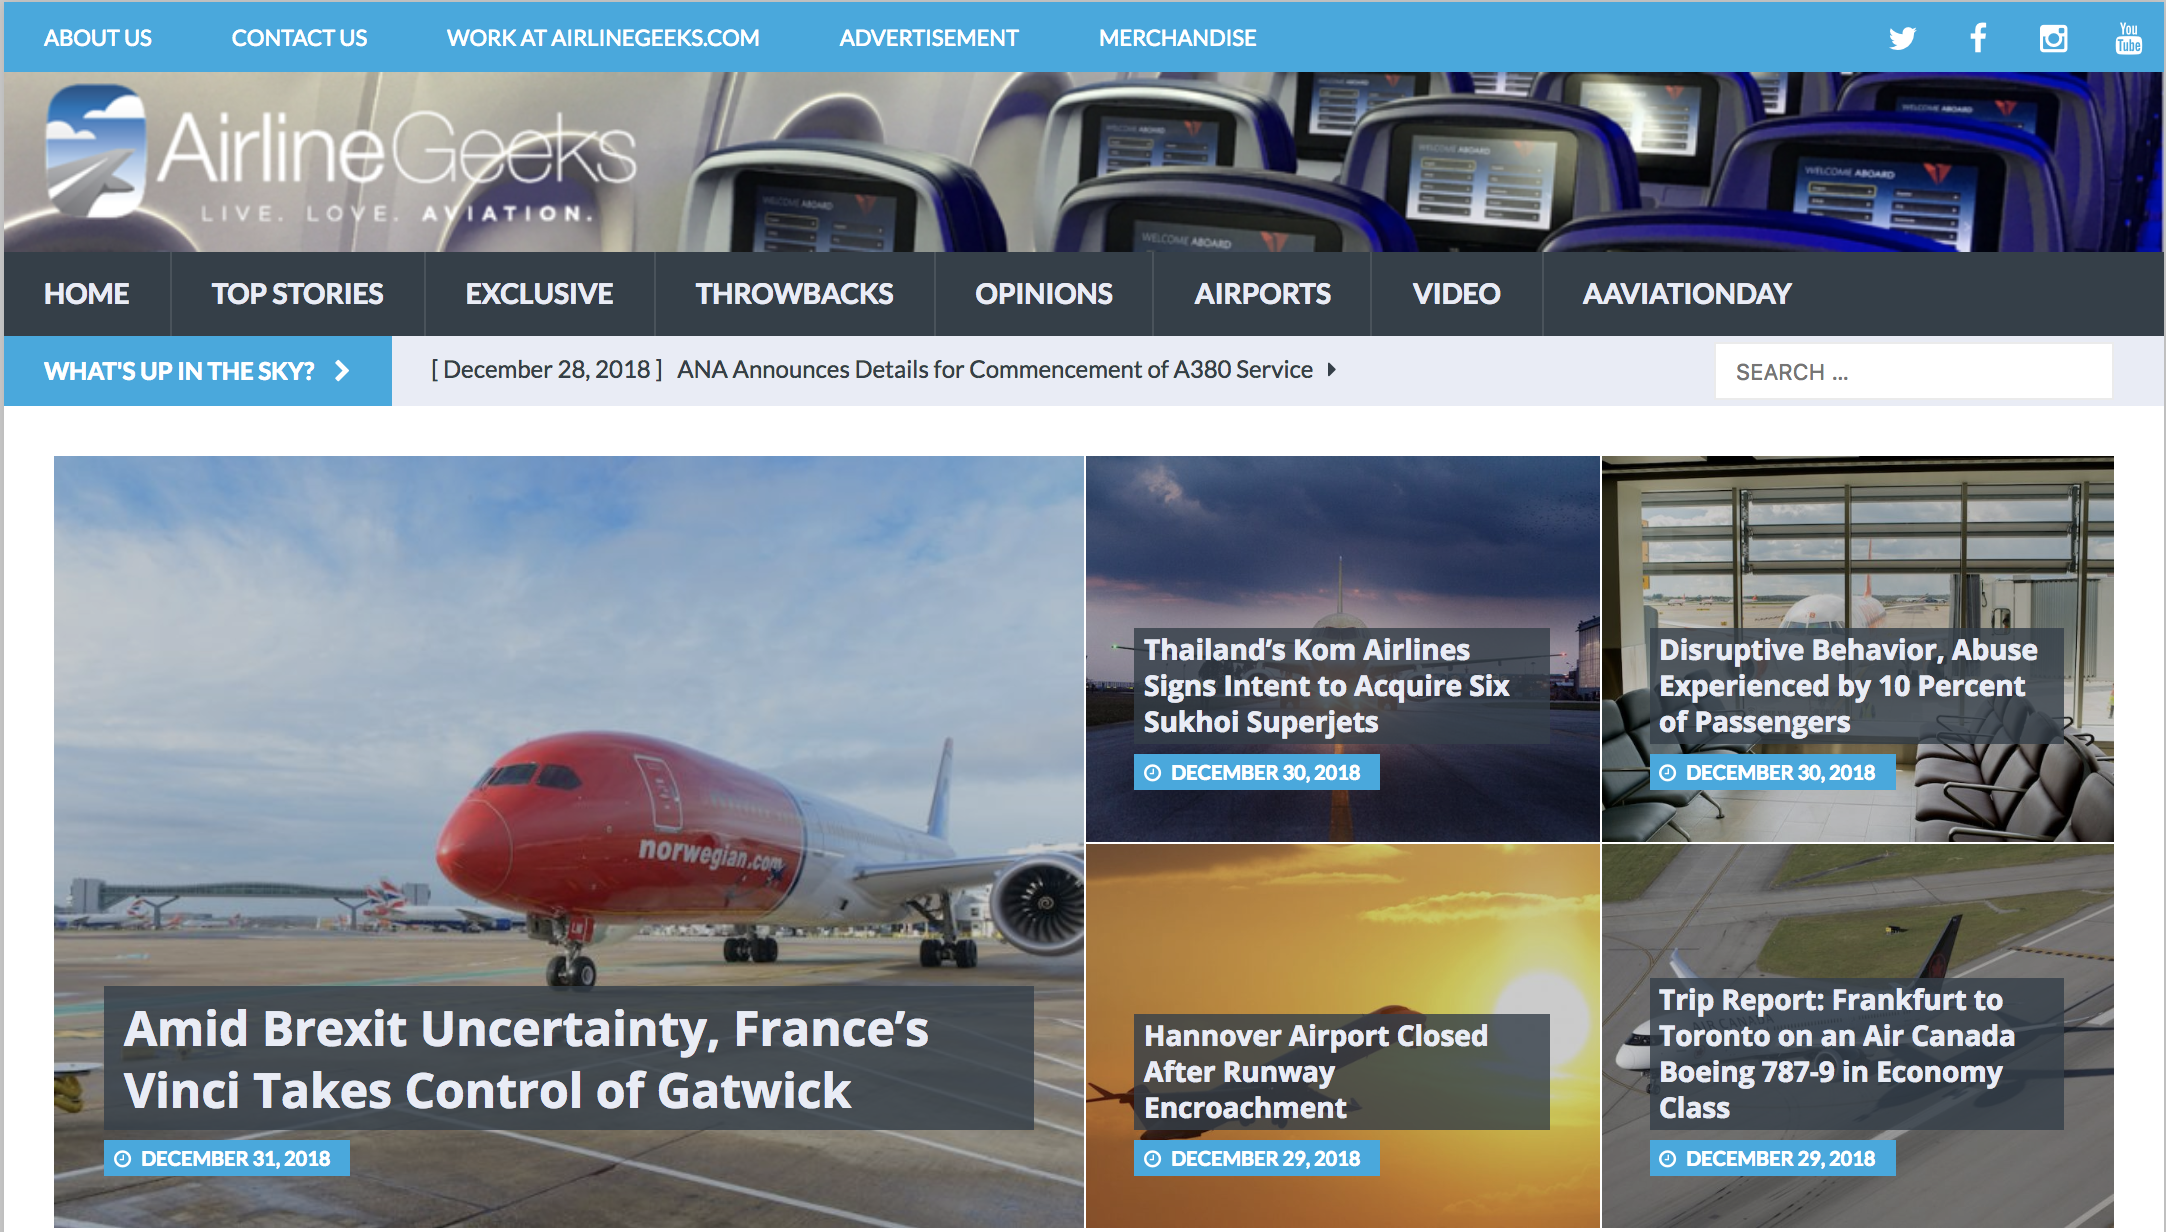 from the beginning - The AirlineGeeks.com homepage